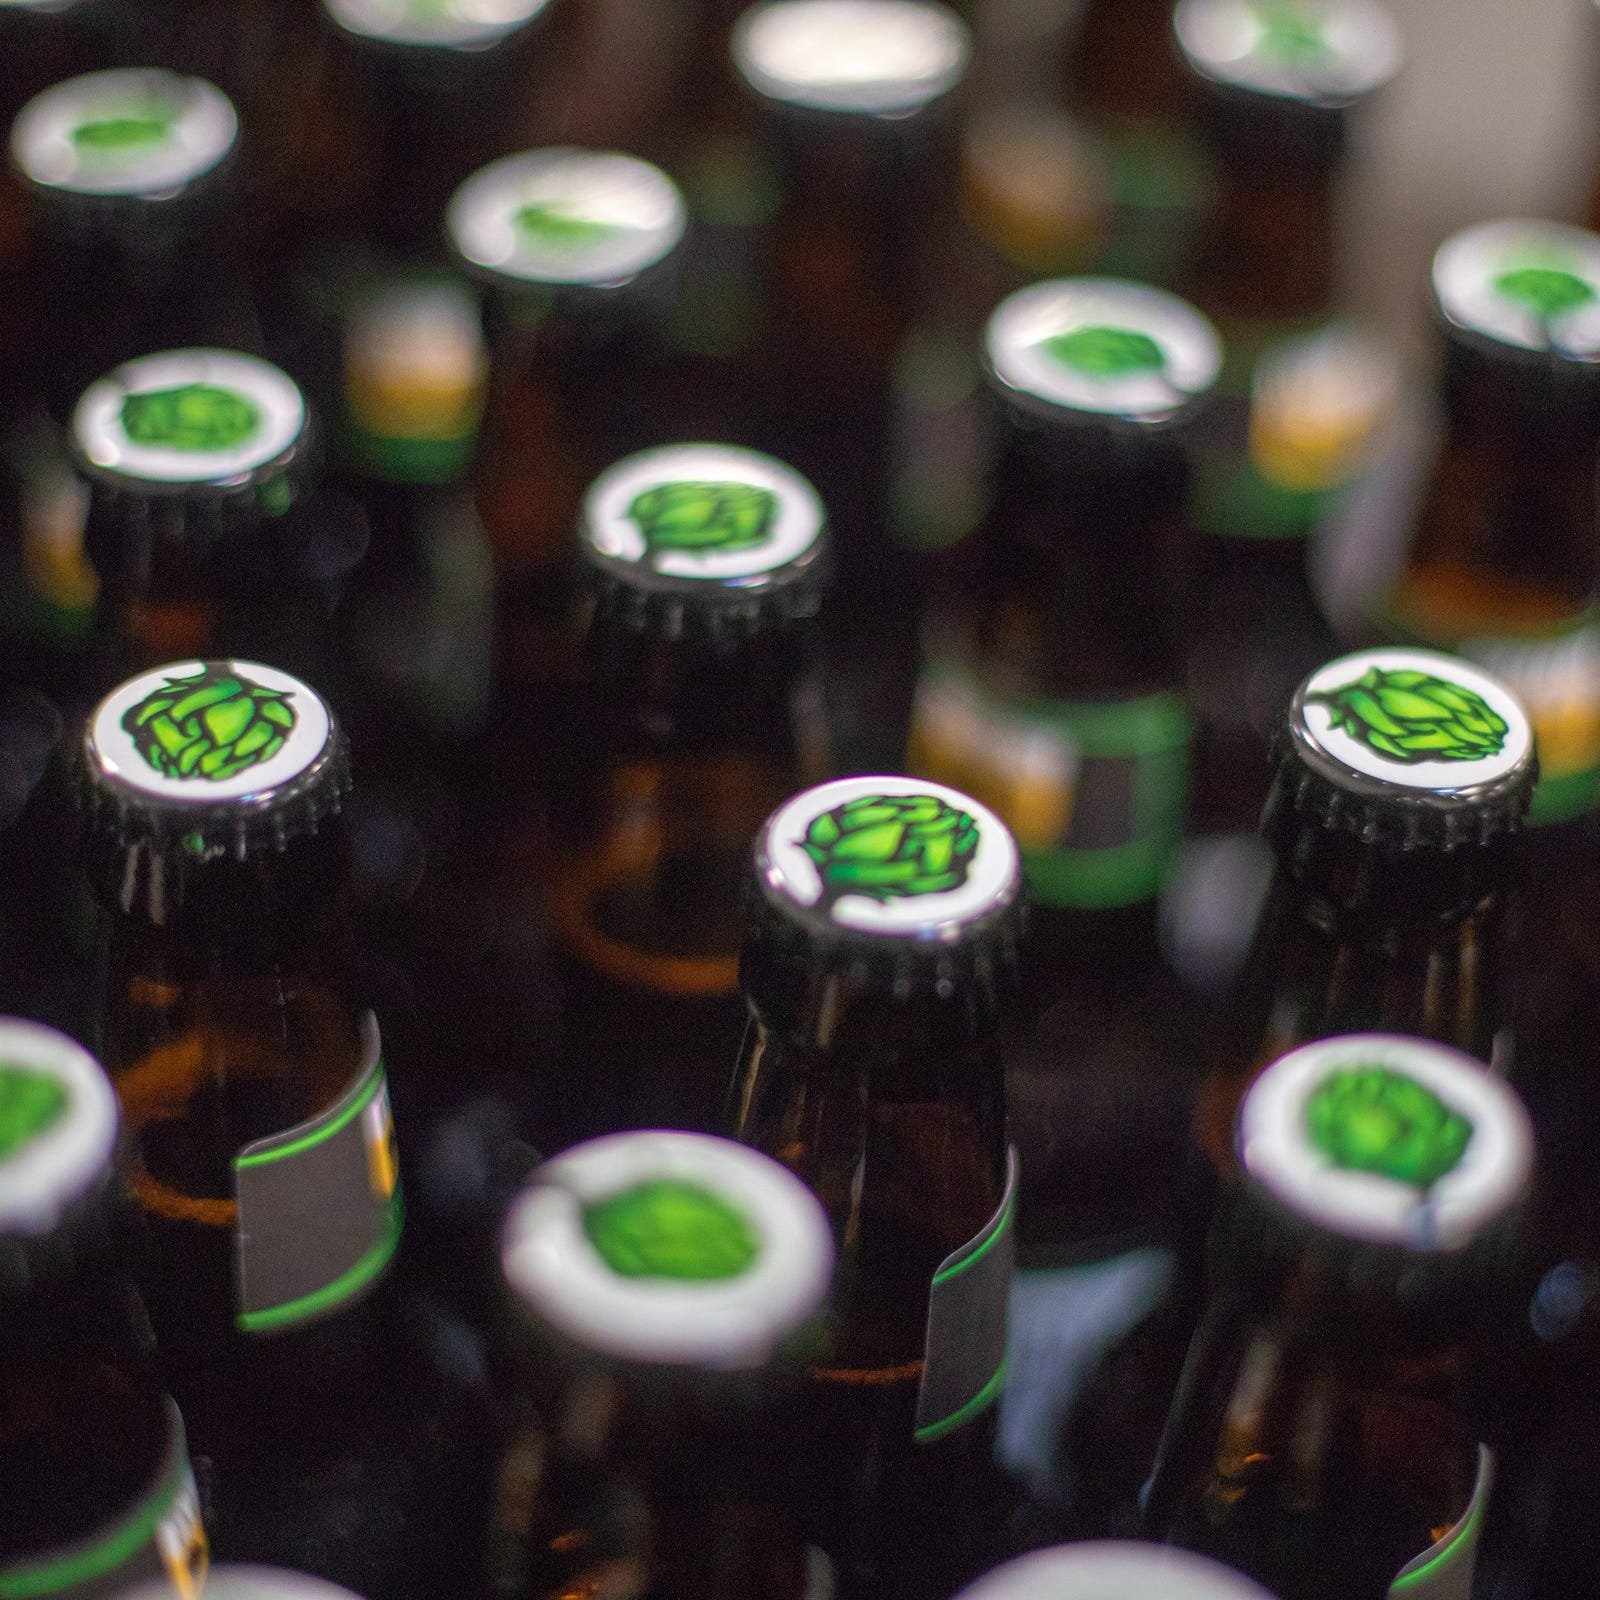 Bell's Brewery releases year-round double IPA starting this month